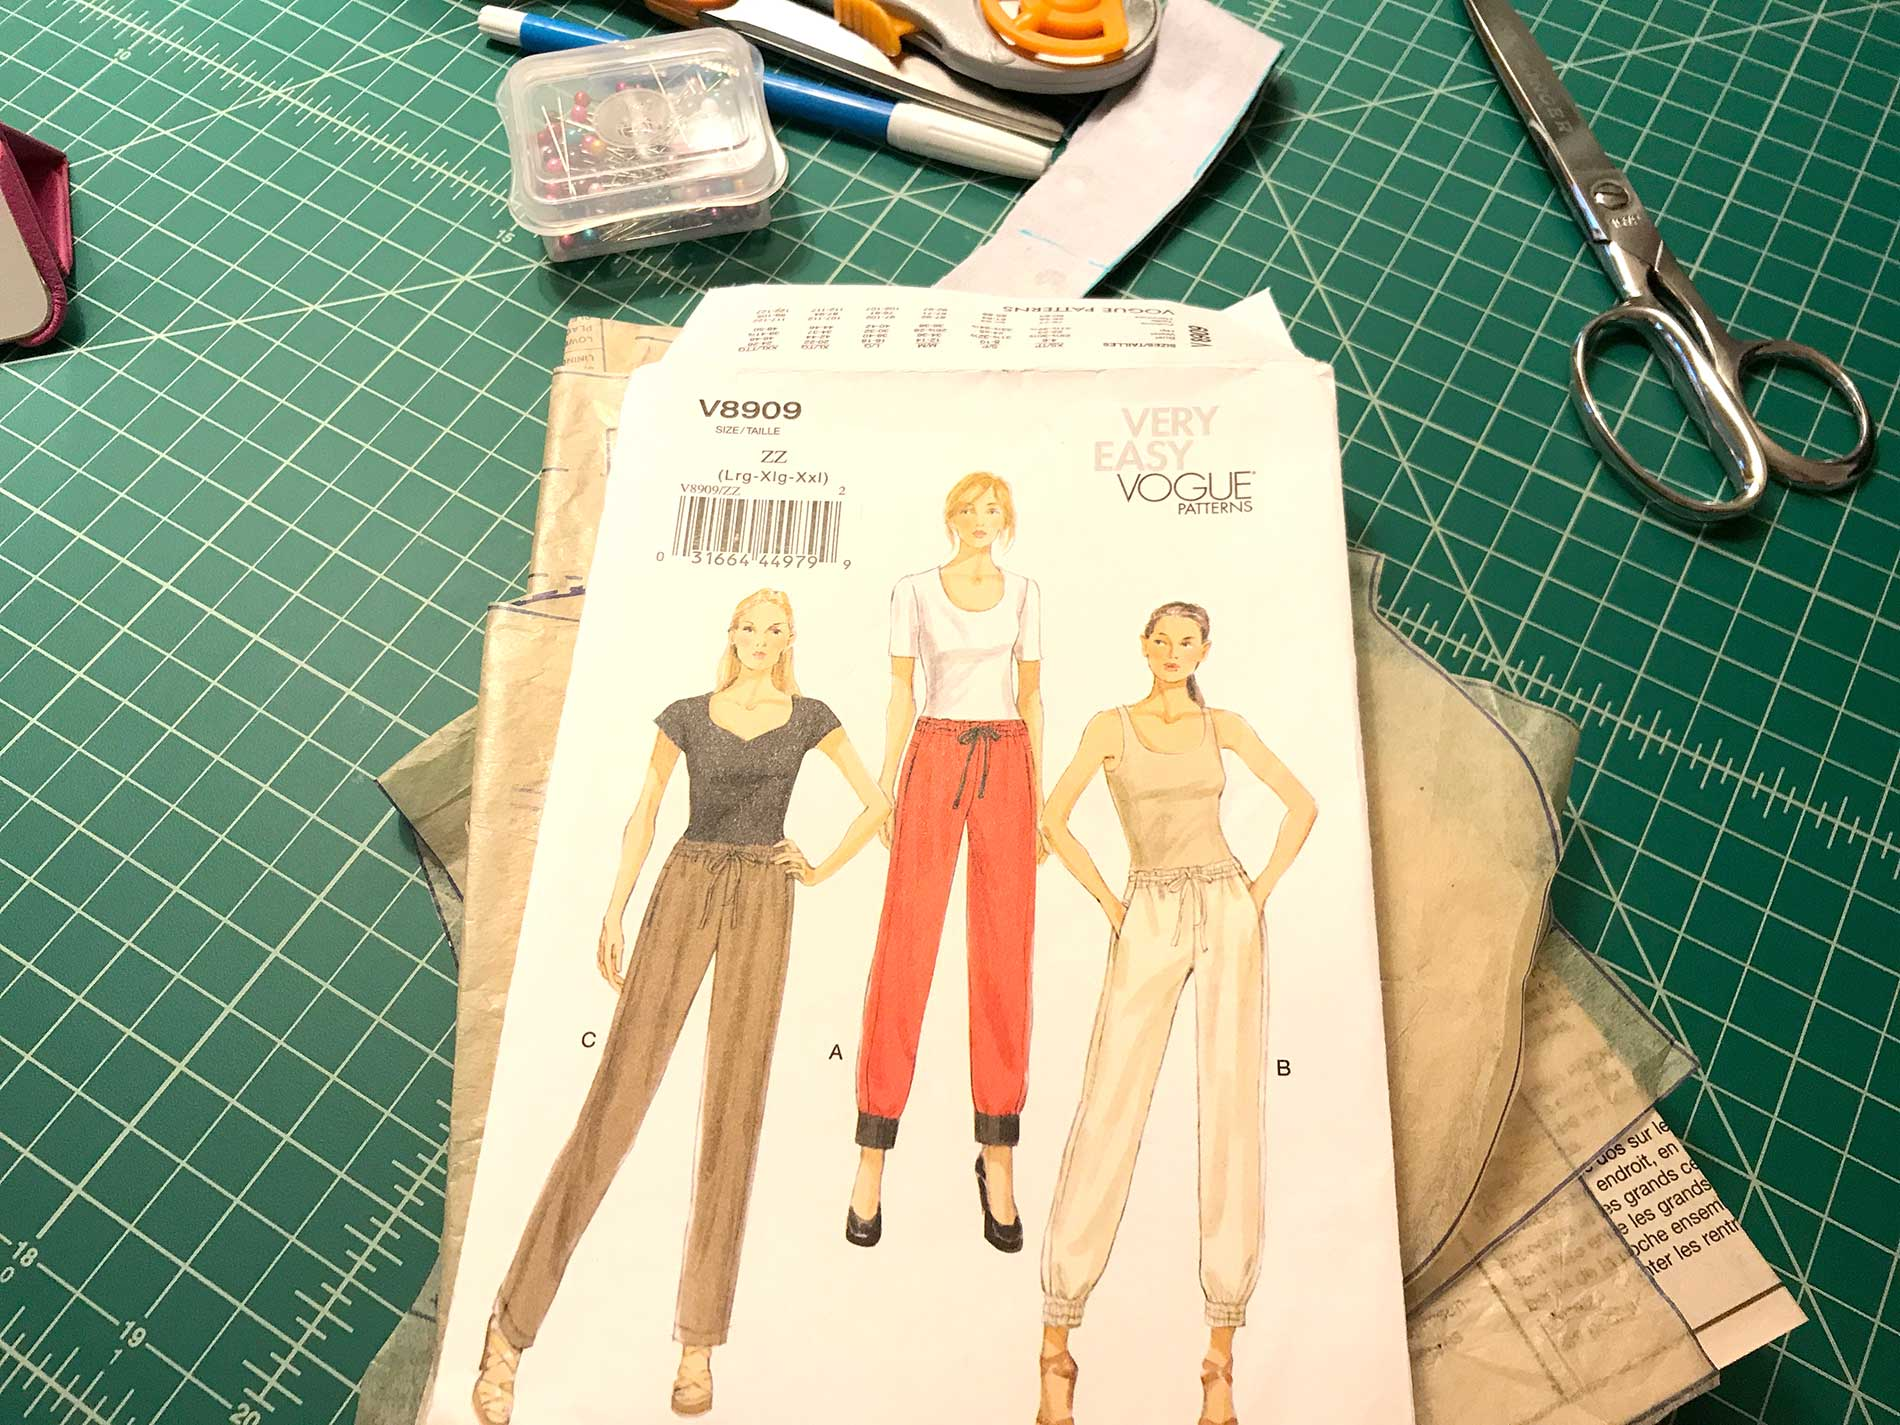 d4a4ab3fbb175 I haven't sewn a garment from a pattern in a long time, and I had forgotten  how hit-or-miss patterns can be. This pattern isn't a disaster, but it has  the ...